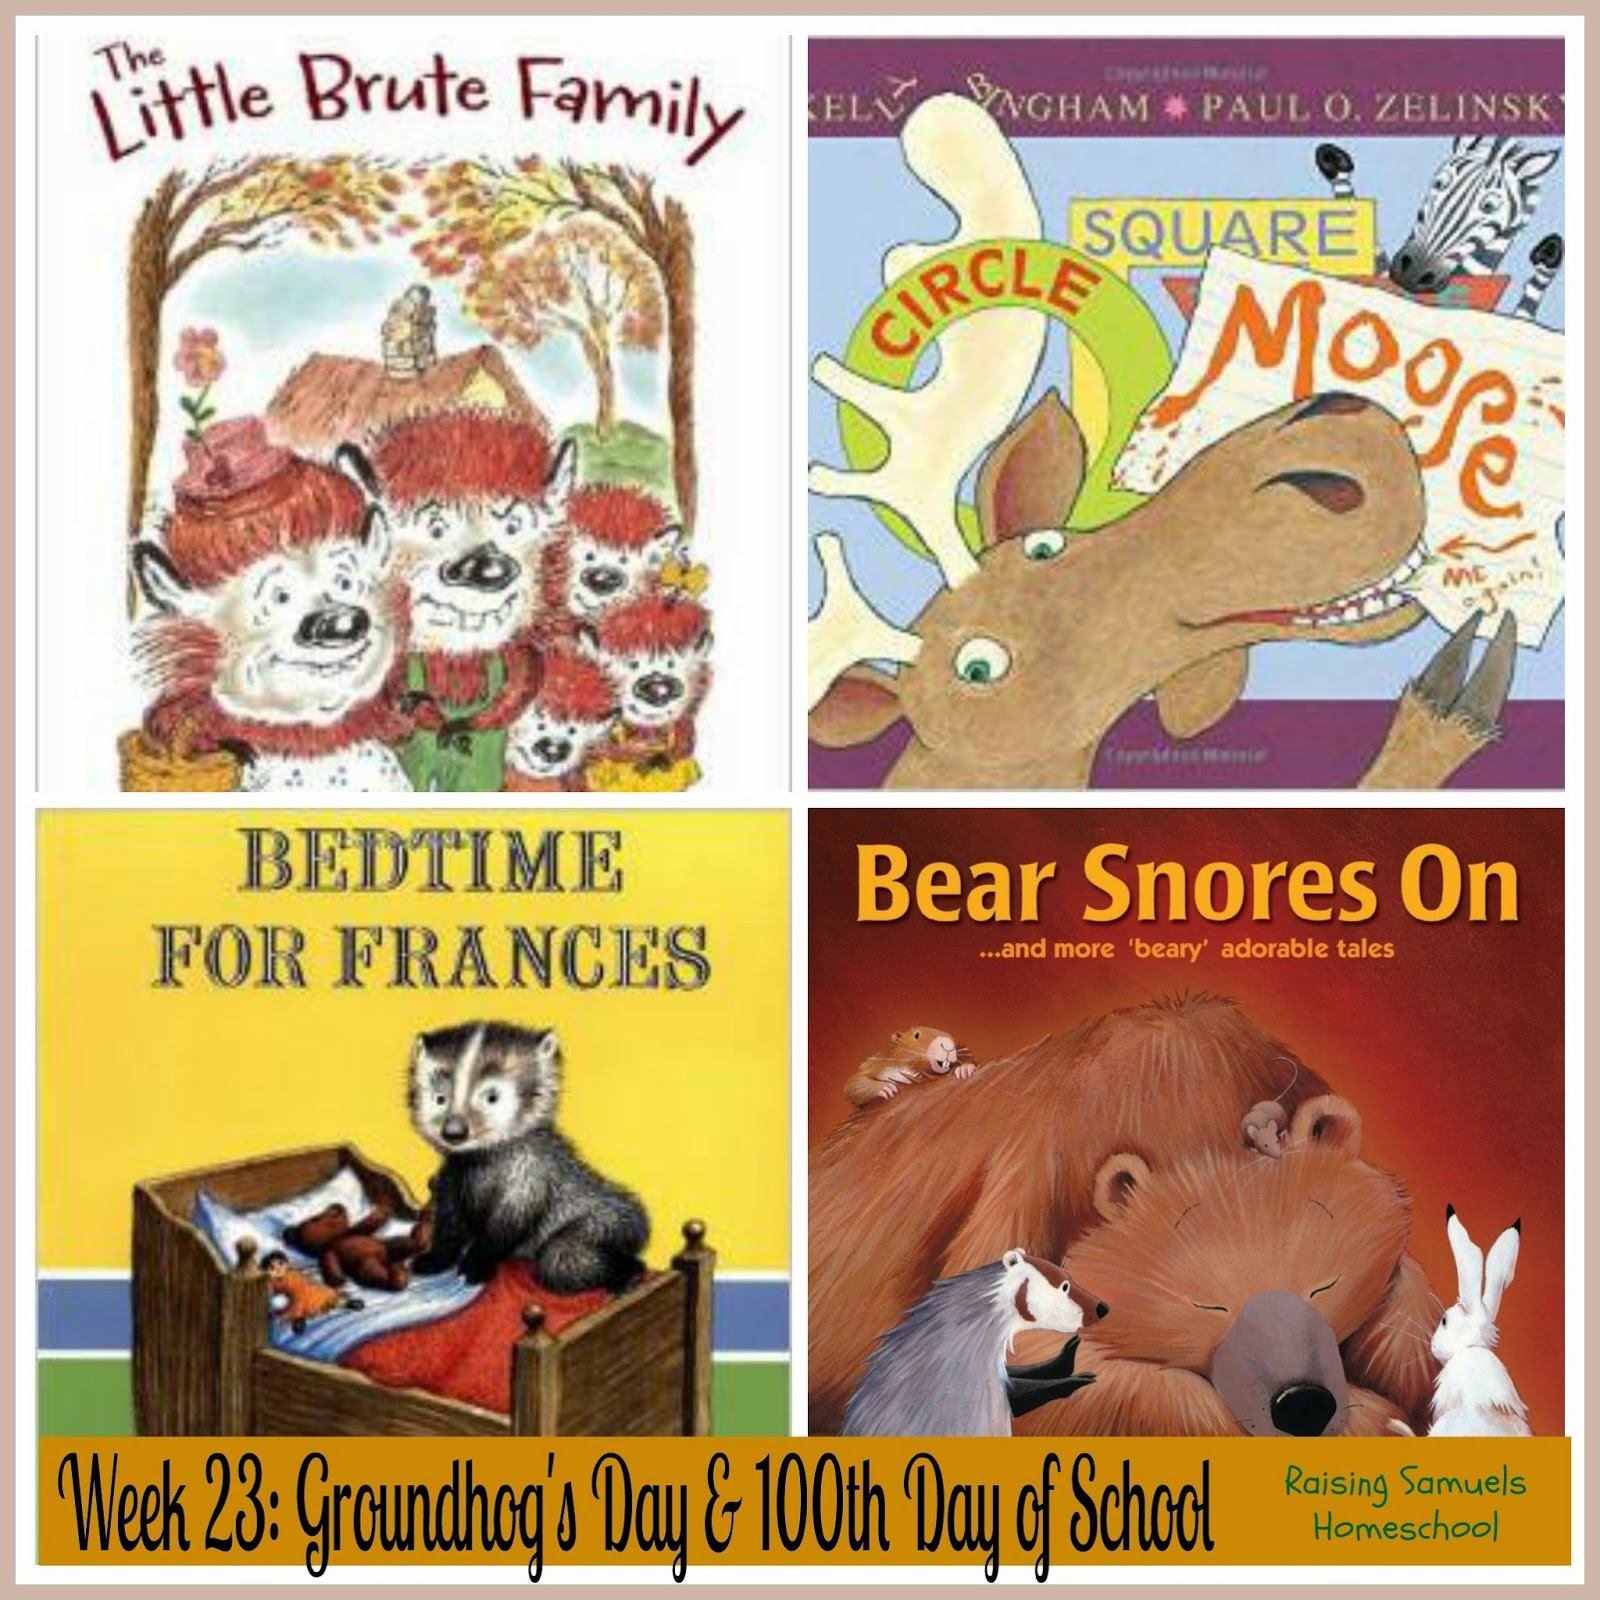 Week 23: Groundhog's Day and 100th Day of School